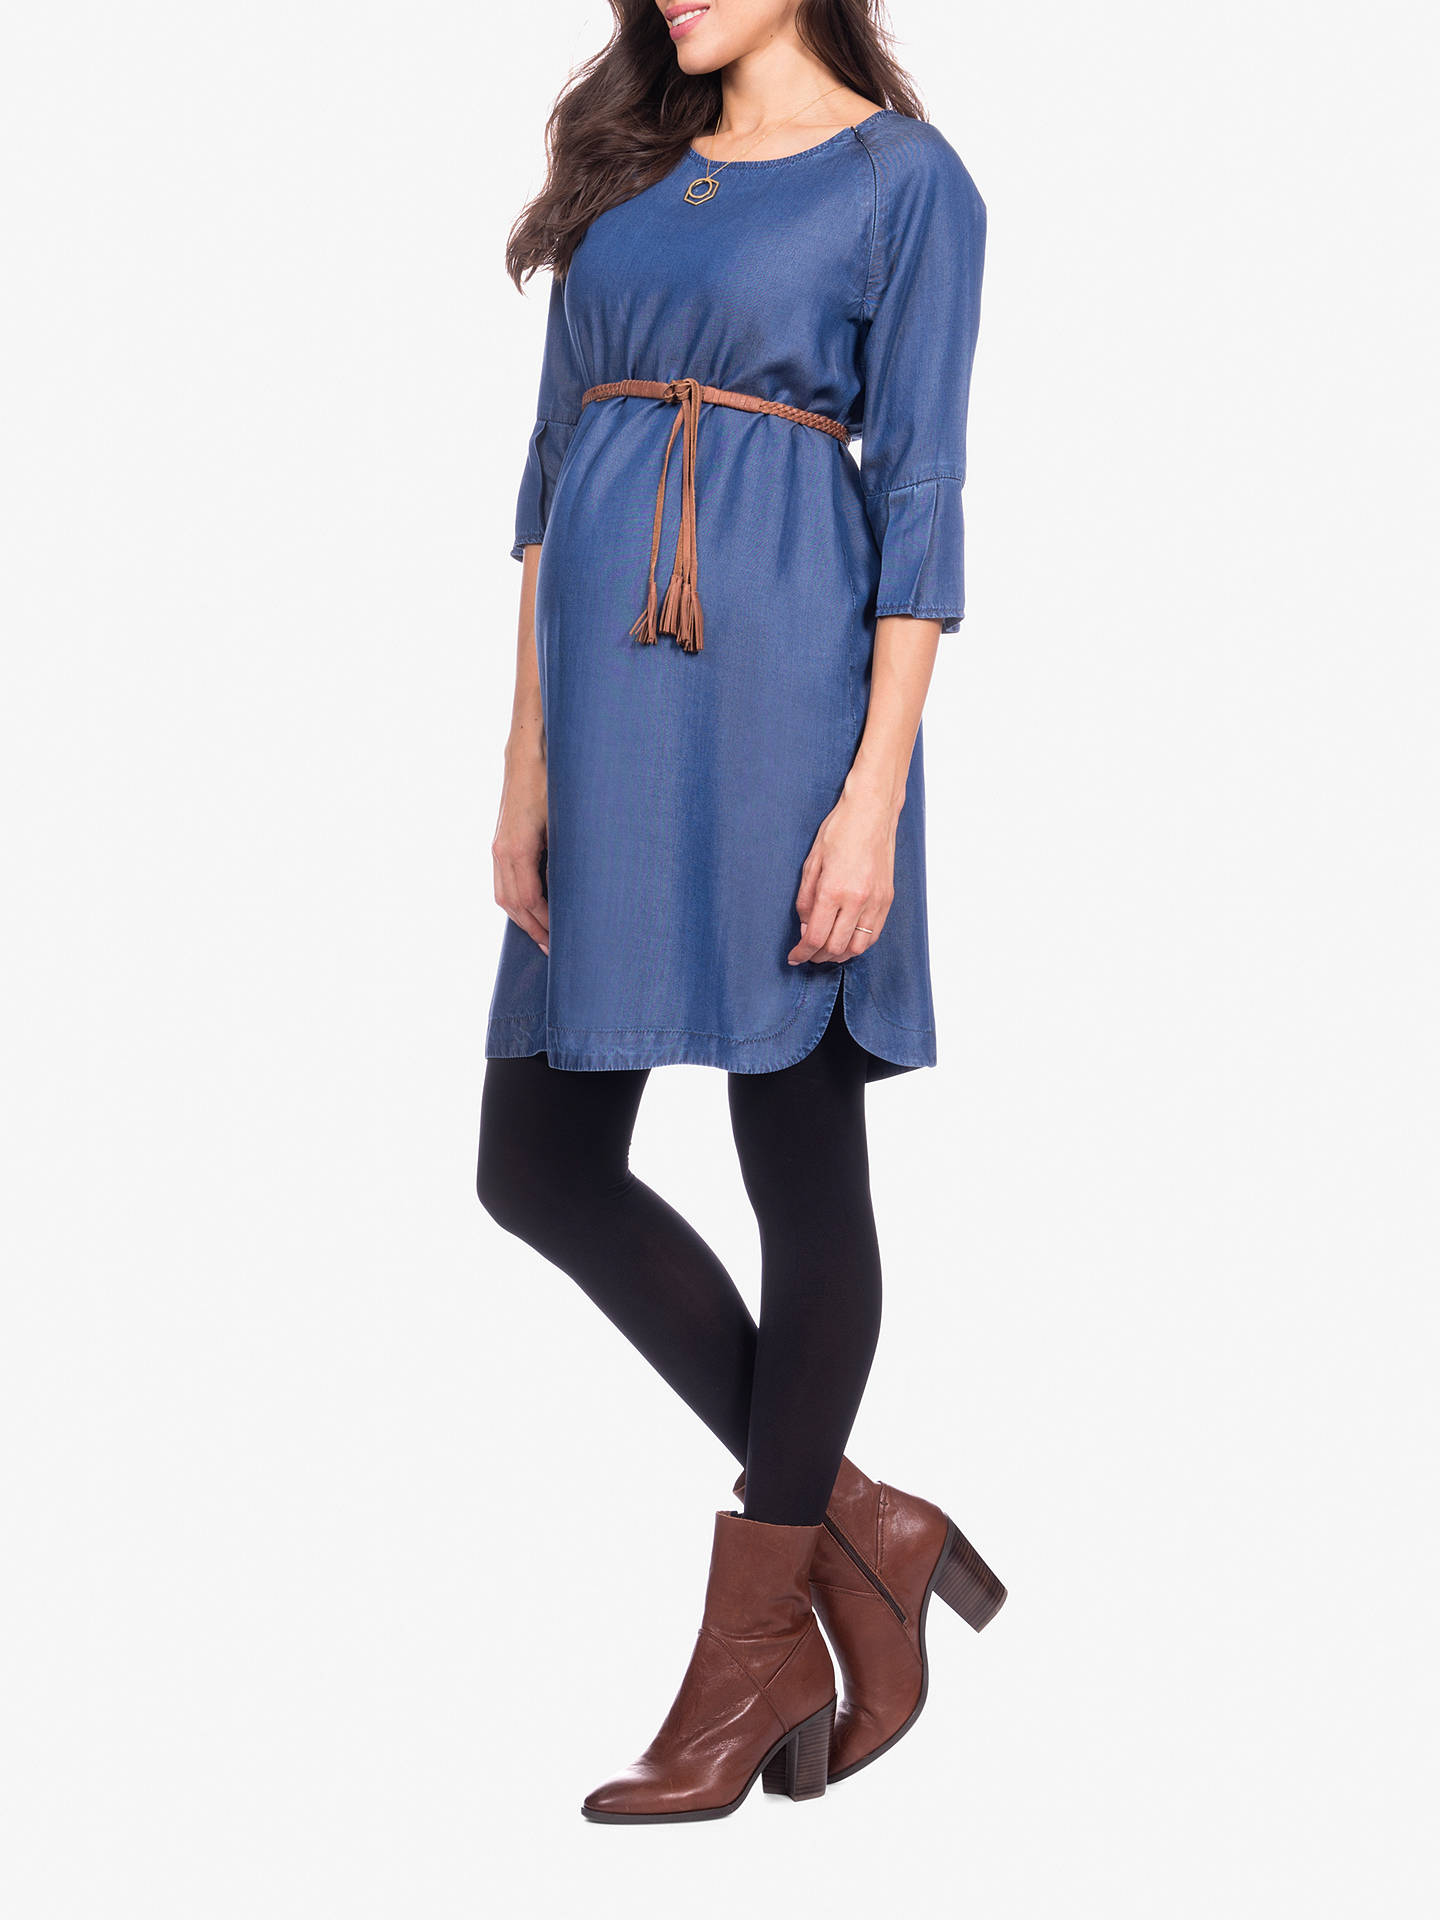 Buy Séraphine Bernice Chambray Maternity Dress, Blue, 8 Online at johnlewis.com